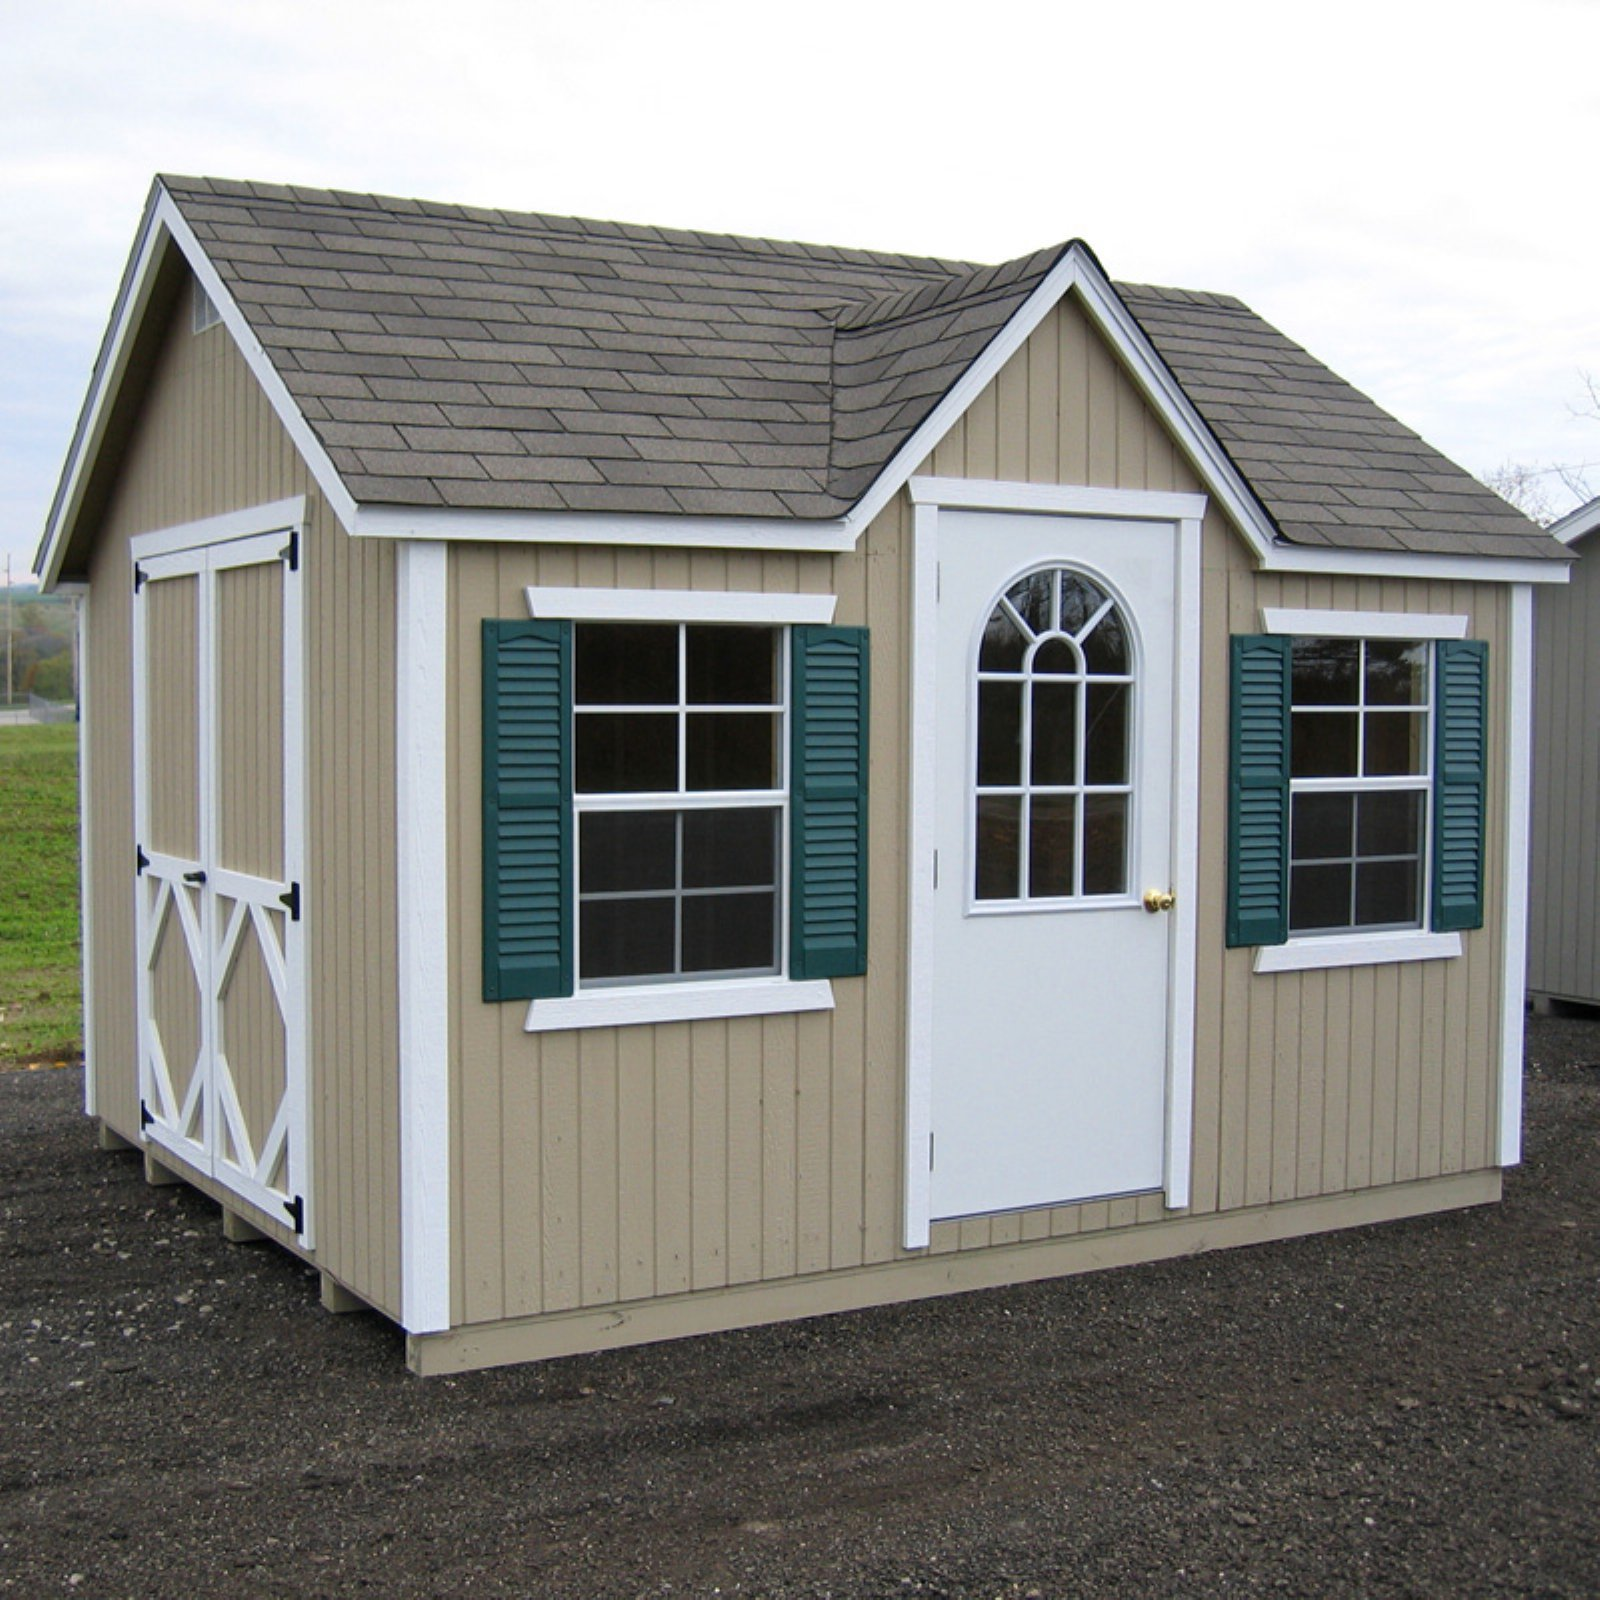 Little Cottage 12 X 10 Ft. Classic Wood Cottage Panelized Storage Shed